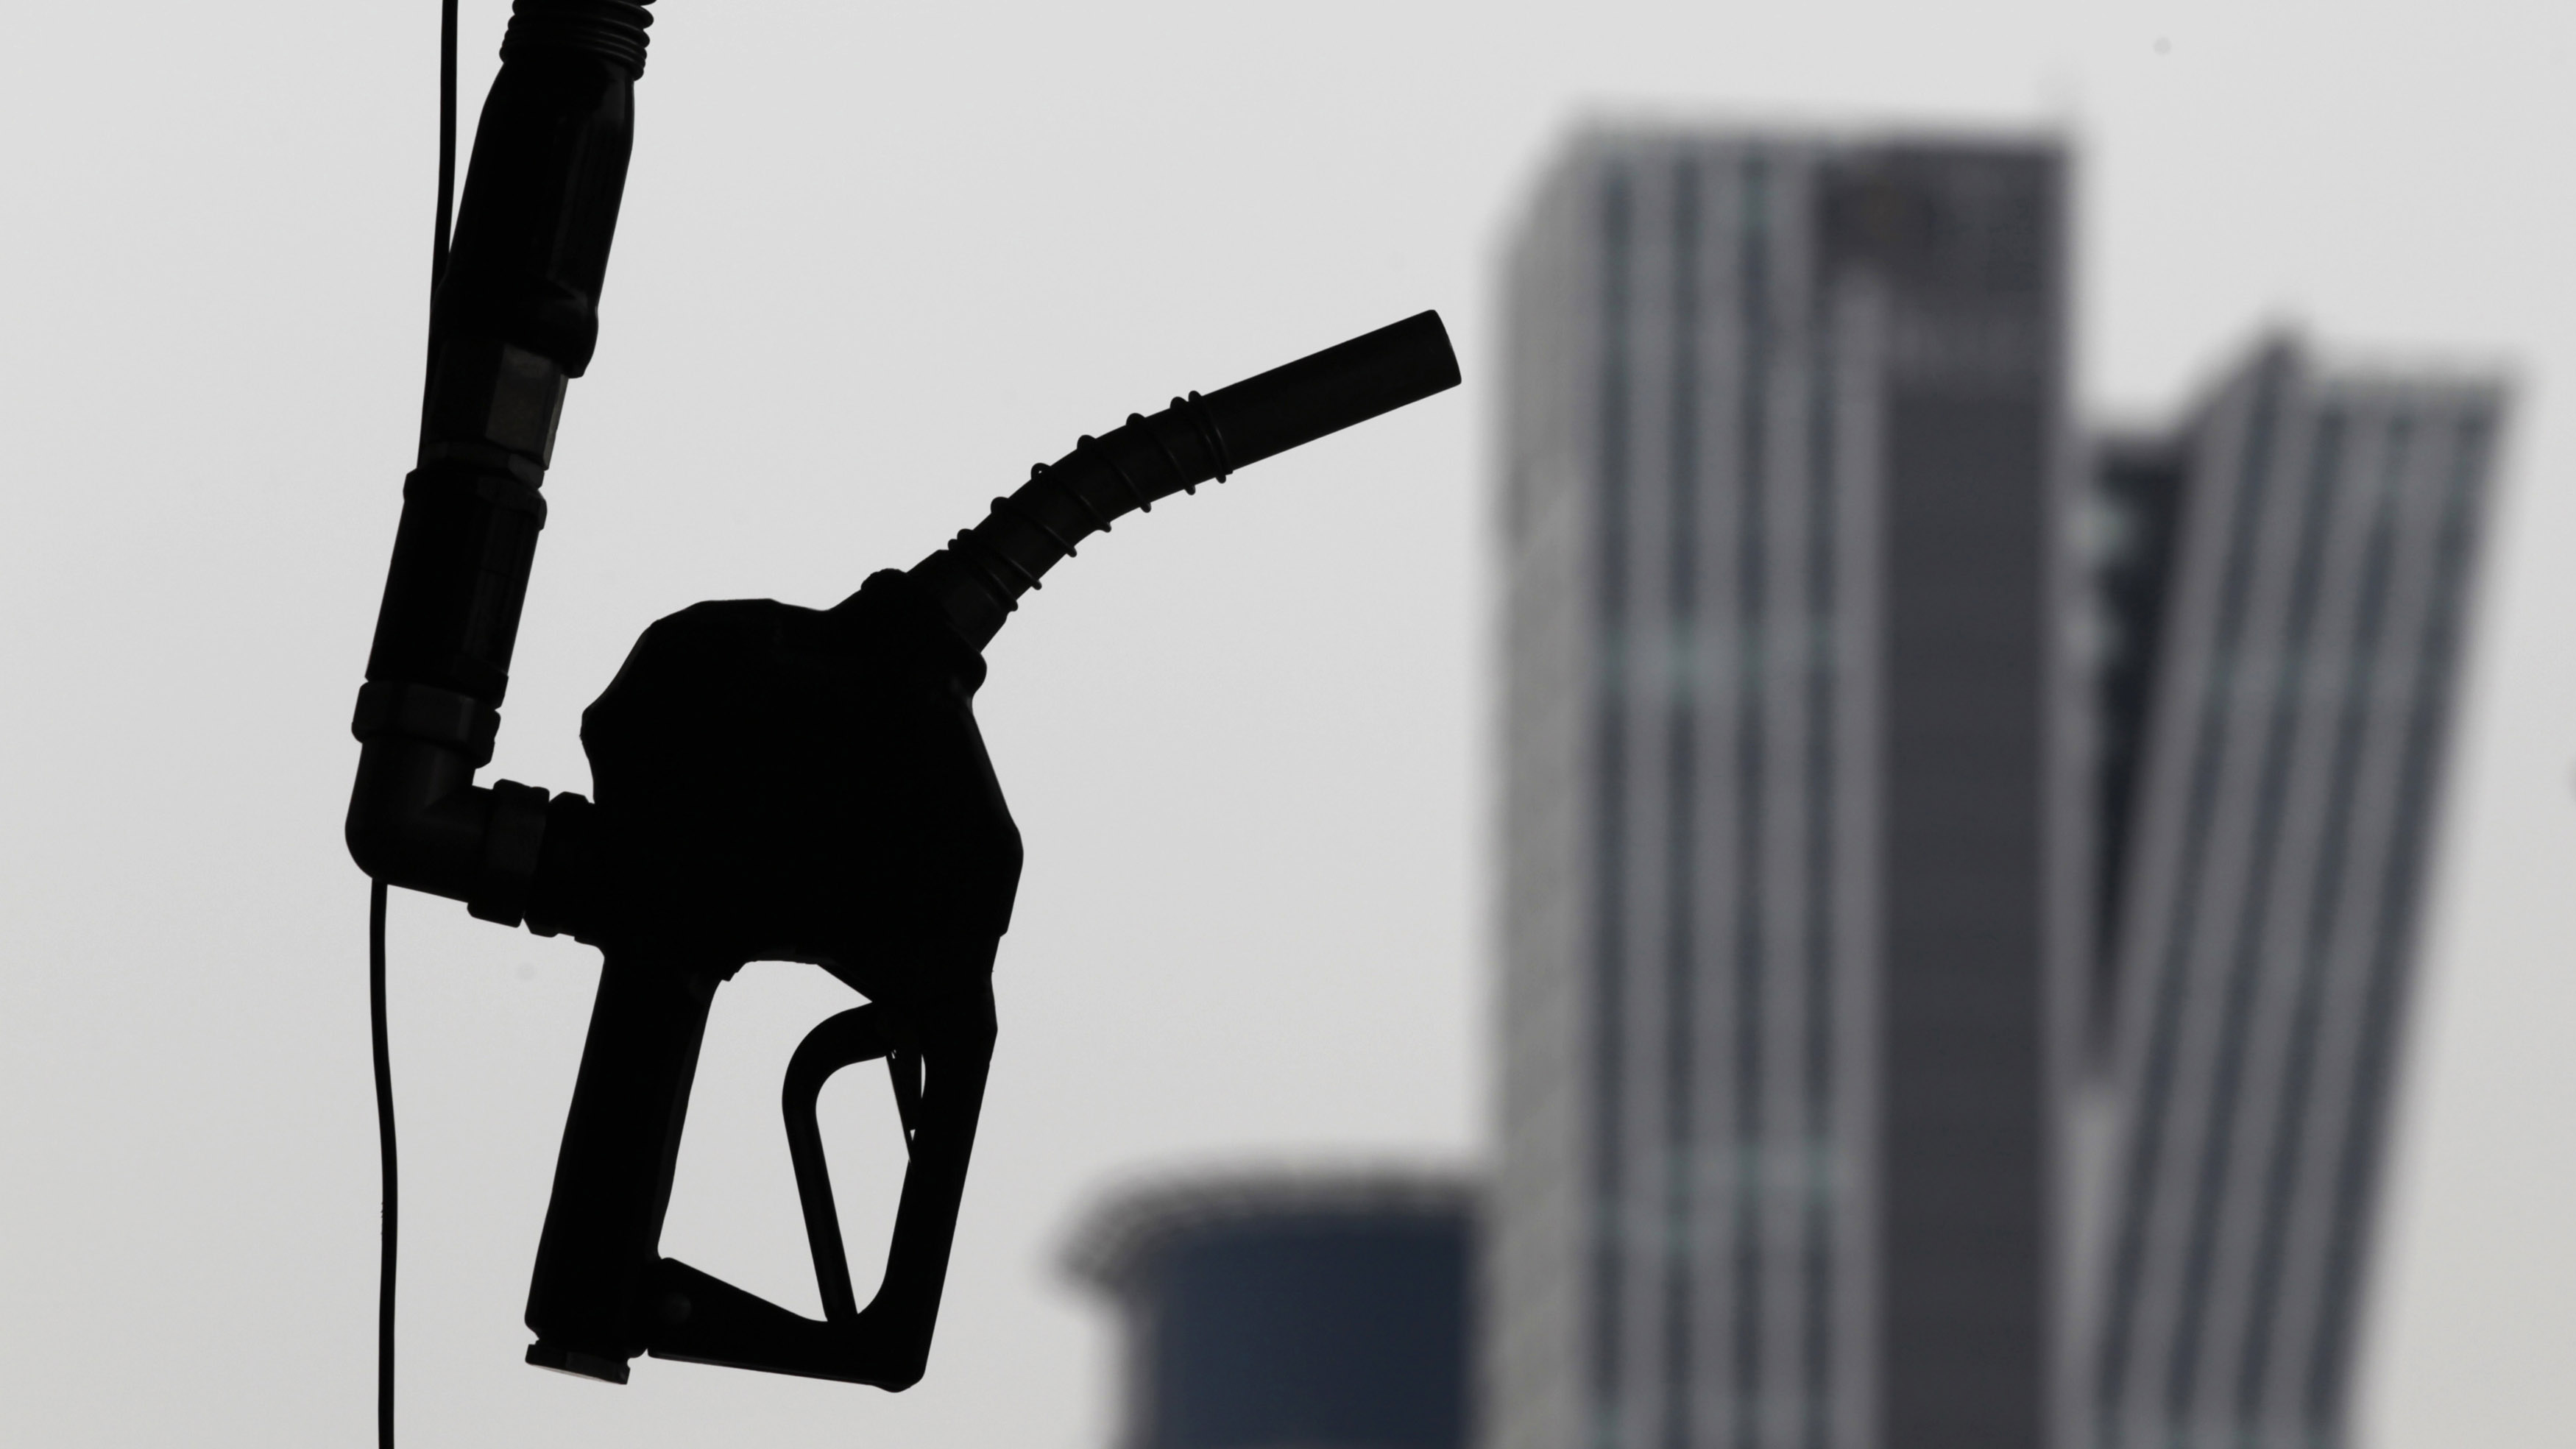 A gasoline pump is seen hanging at a petrol station in central Seoul April 6, 2011. South Korea's government said in a statement on Wednesday that it will consider cutting oil taxes if crude prices rise further, without giving details. The announcement came soon after the country's smallest crude oil refiner joined three other refiners in lowering gasoline and diesel prices to help the government curb domestic inflation.   REUTERS/Lee Jae-Won (SOUTH KOREA - Tags: BUSINESS ENERGY) - GM1E74615N501